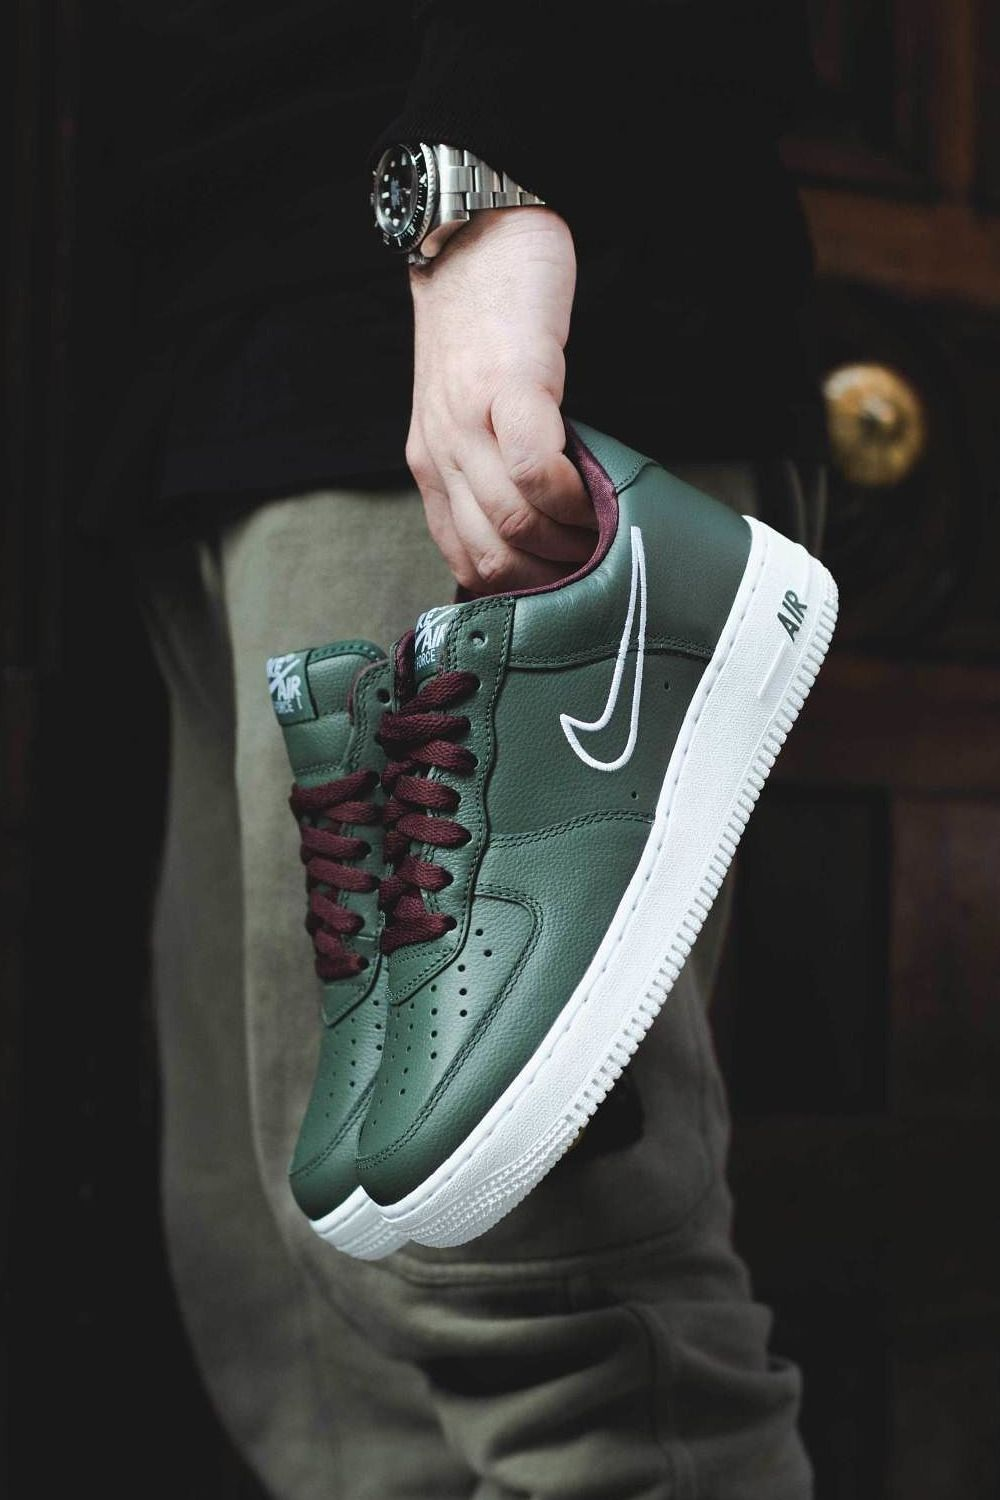 7185e1e83 Nike Air Force 1 Low Retro 'Hong Kong' | Nike in 2019 | Sneakers ...